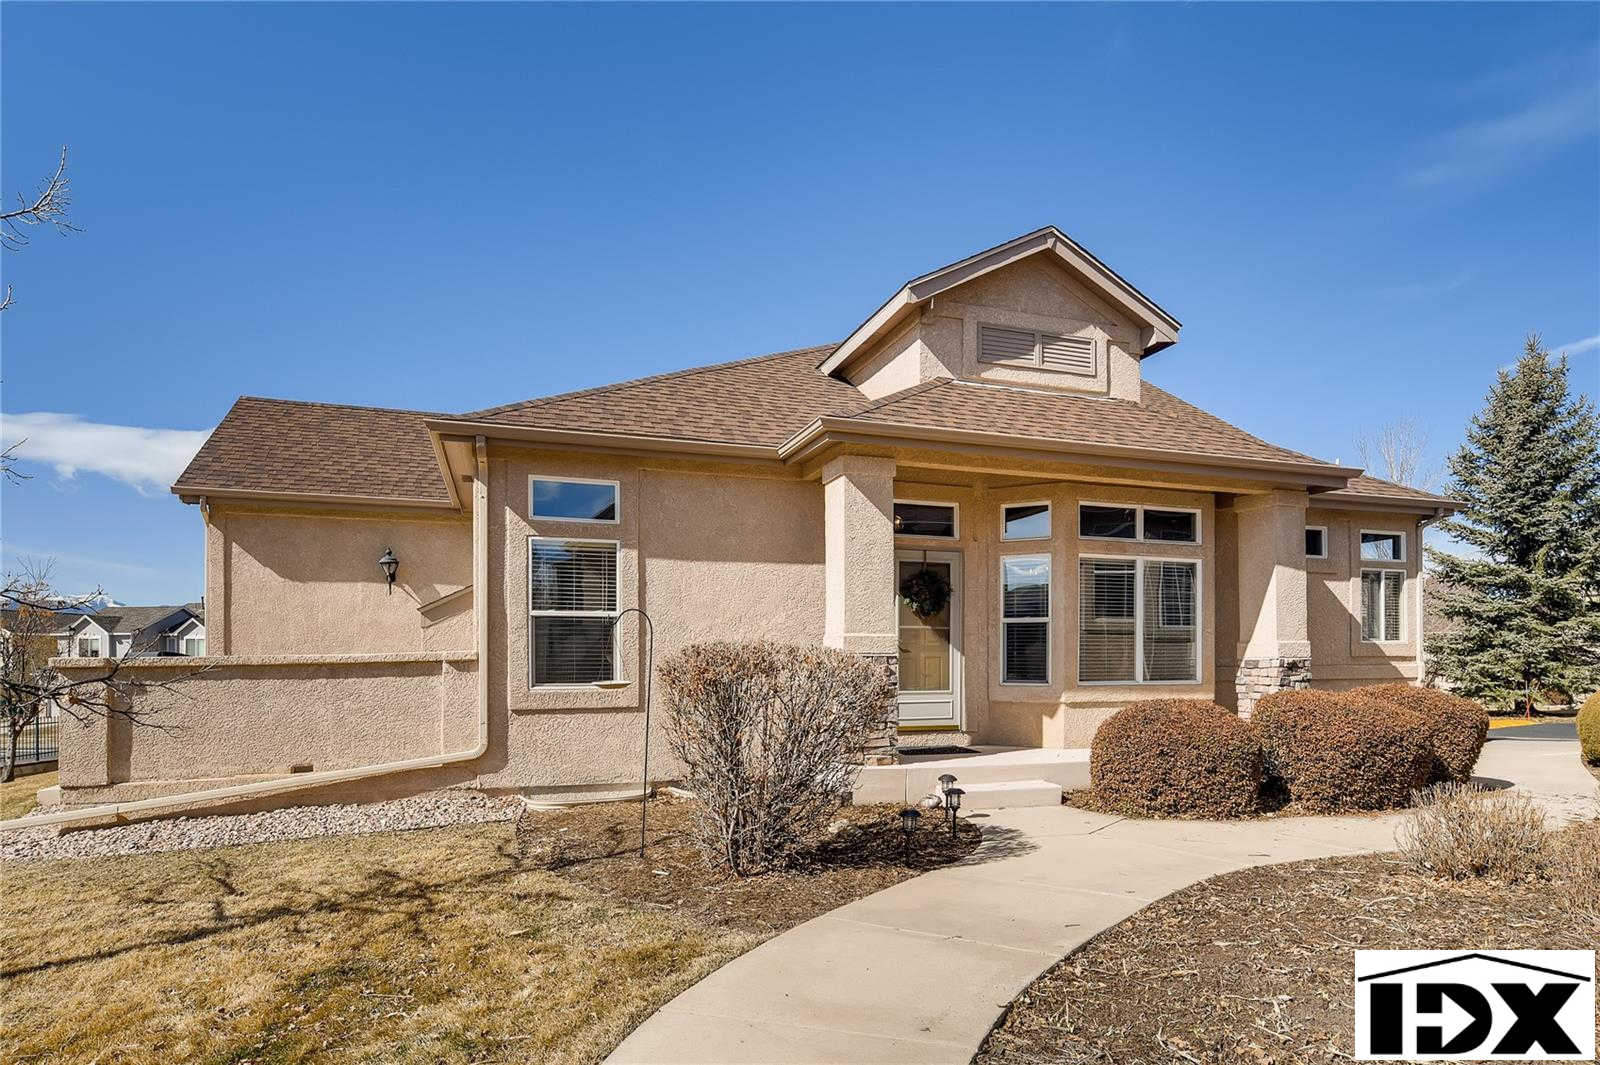 UNDER CONTRACT in less than 24 hours! ~ 3531 Plantation Grove, Colorado Springs, CO 80920